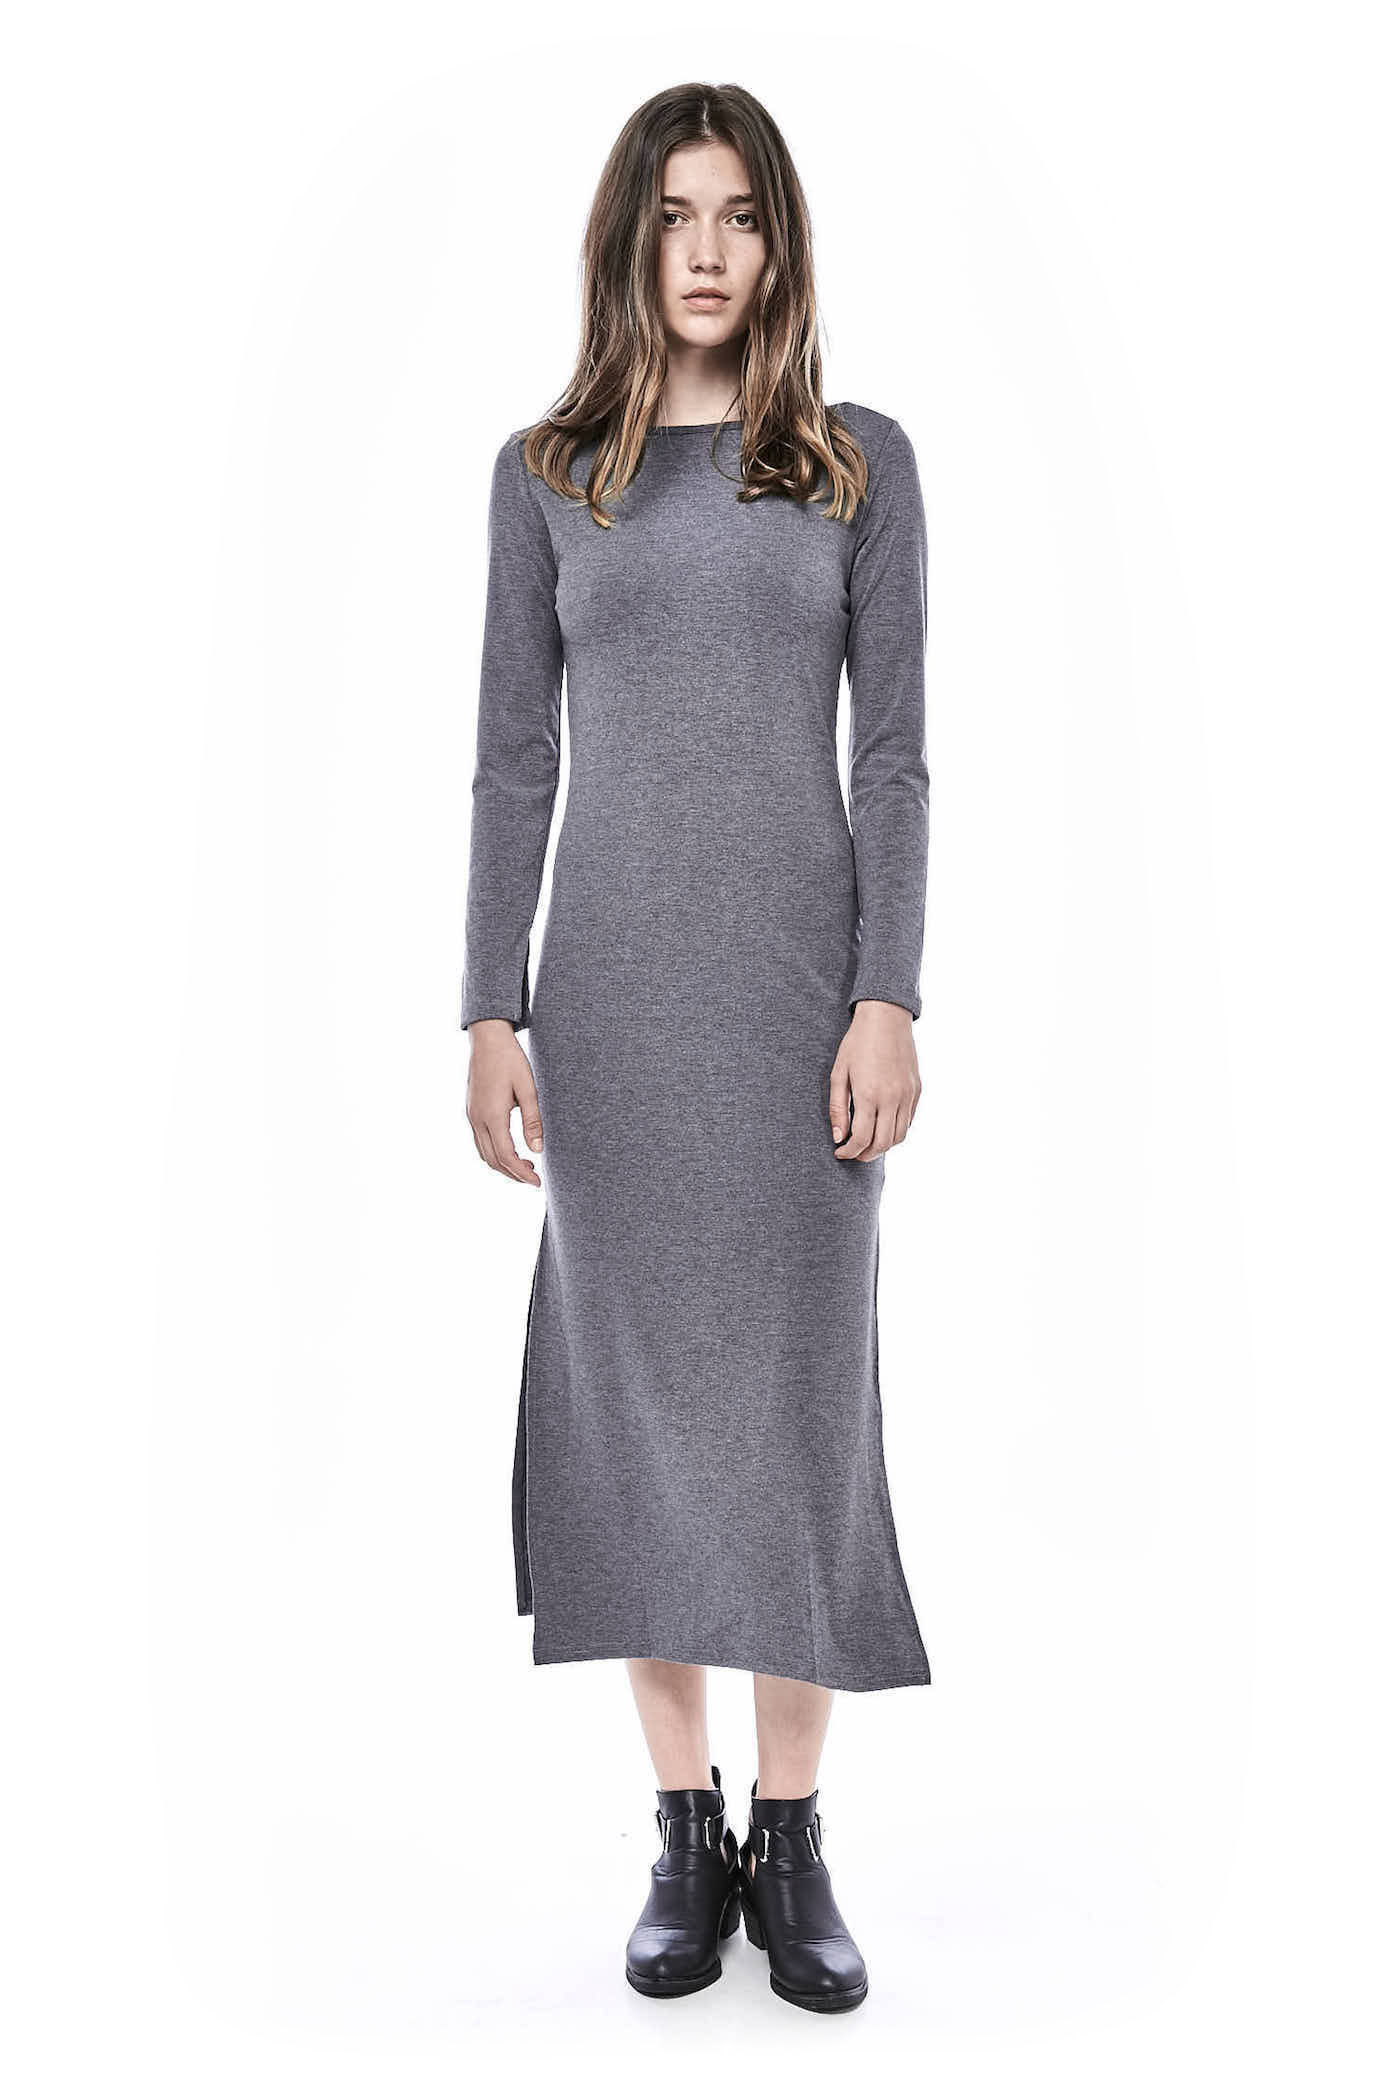 Tiffanie Long-sleeve Jersey Dress